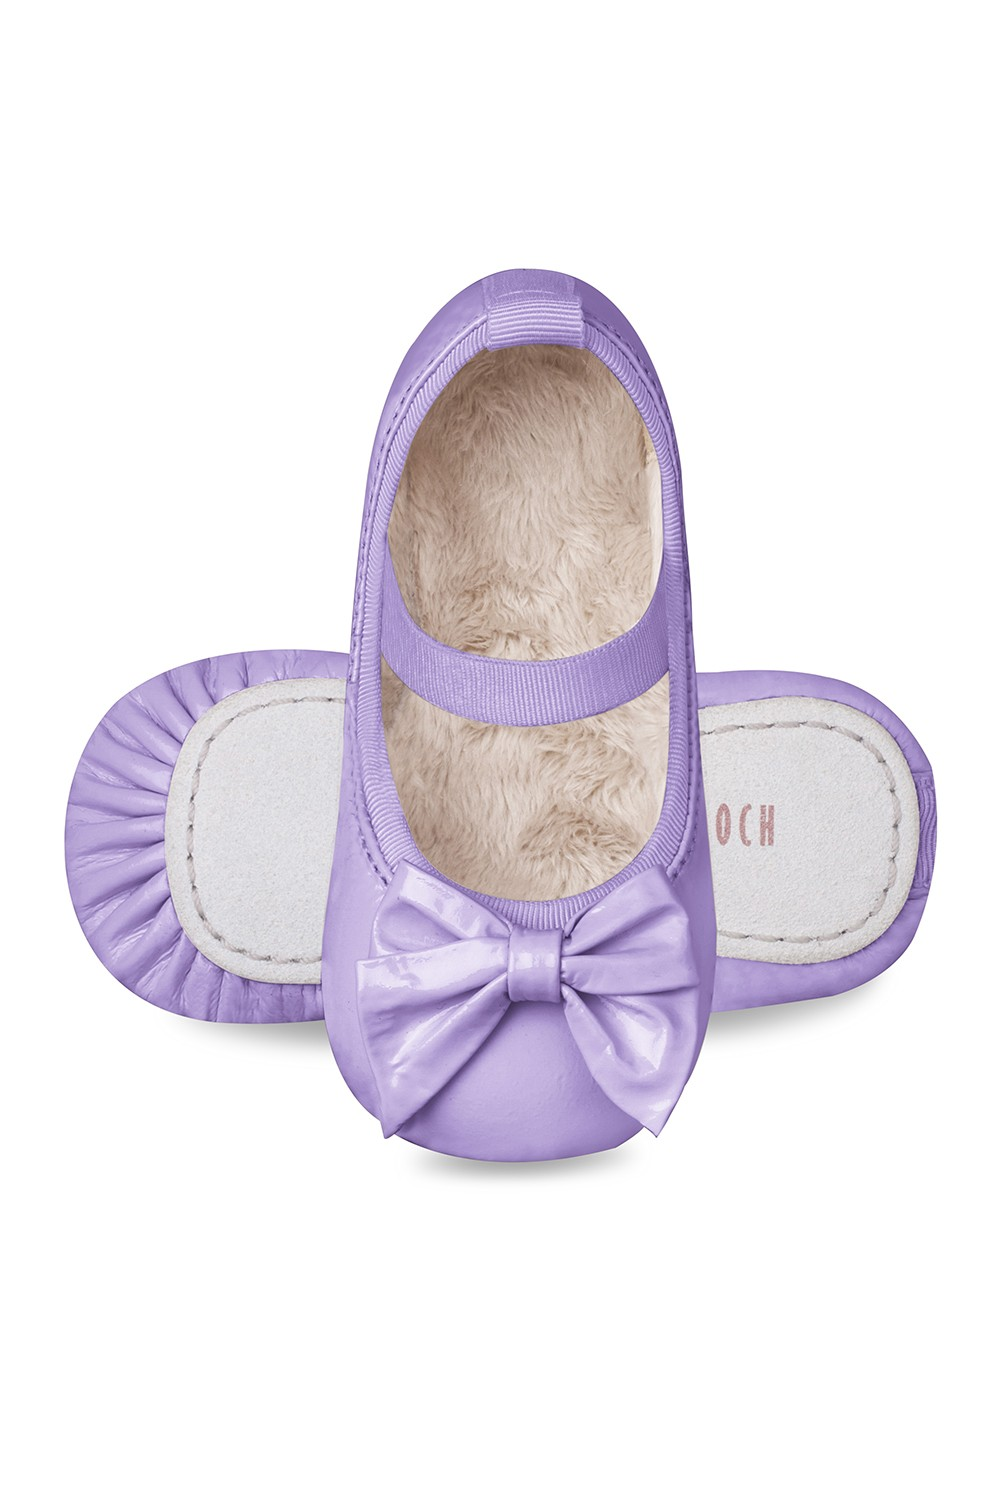 Abigail - Fur Lining Babies Fashion Shoes